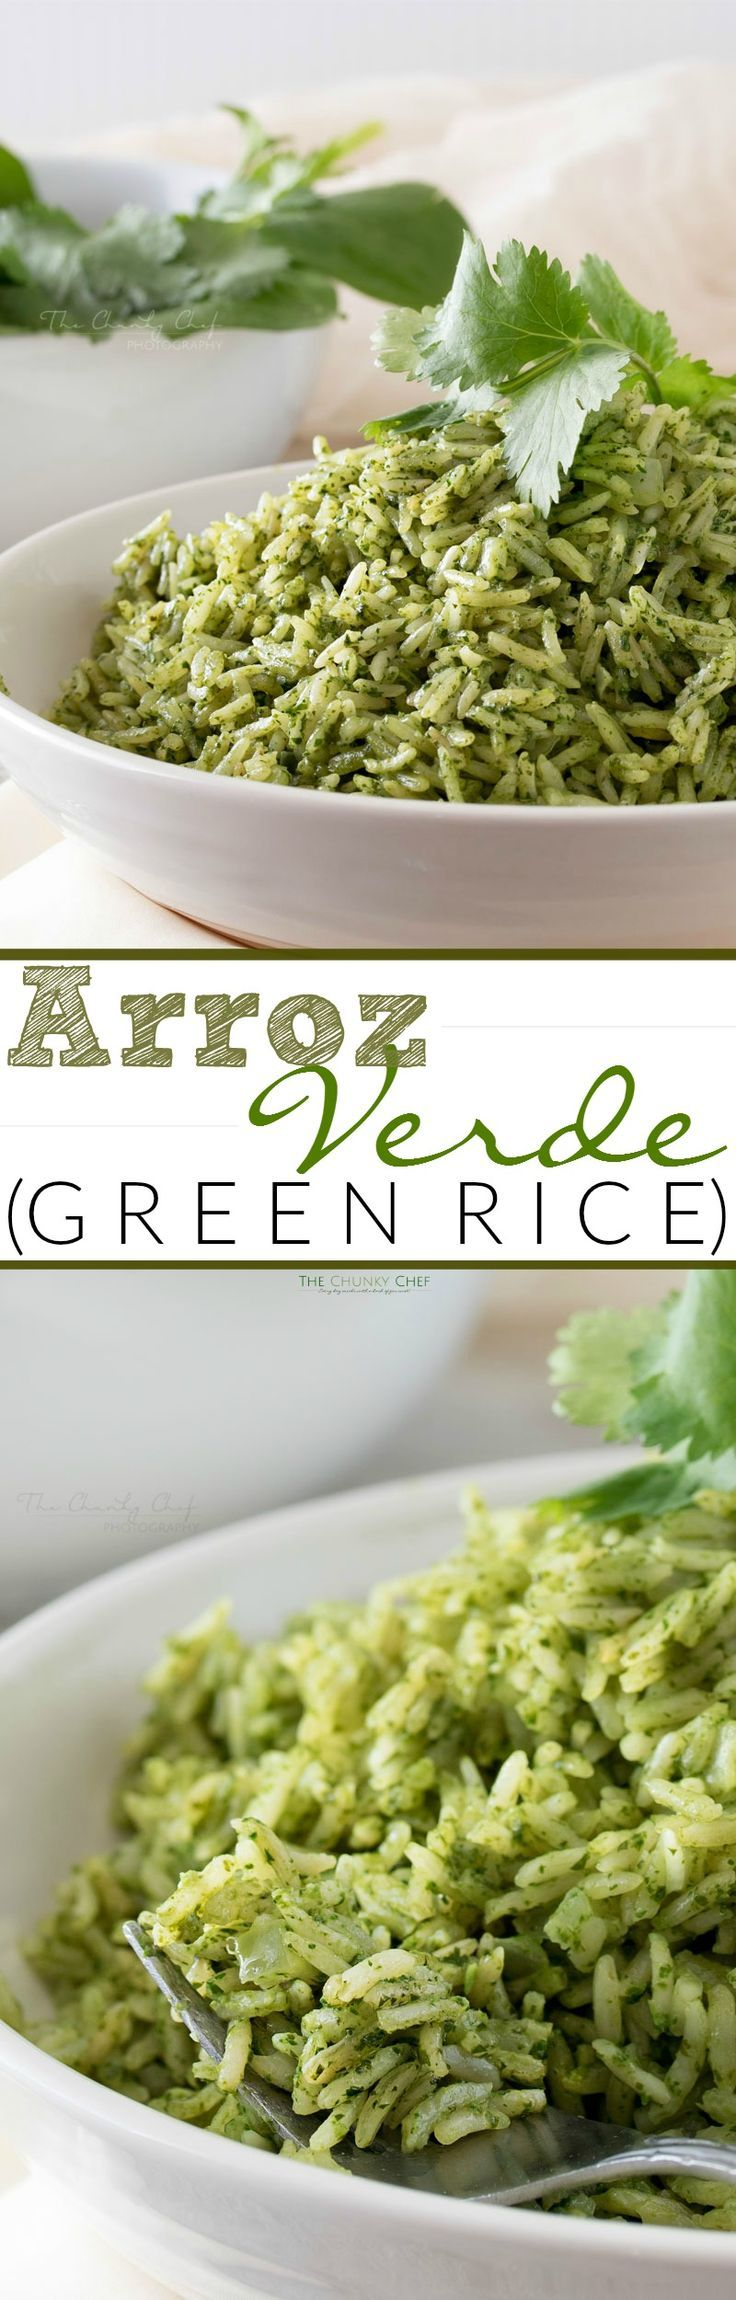 Arroz Verde Green Rice | So full of flavor, and you've just got to come see what gives it it's bright green color! | http://thechunkychef.com